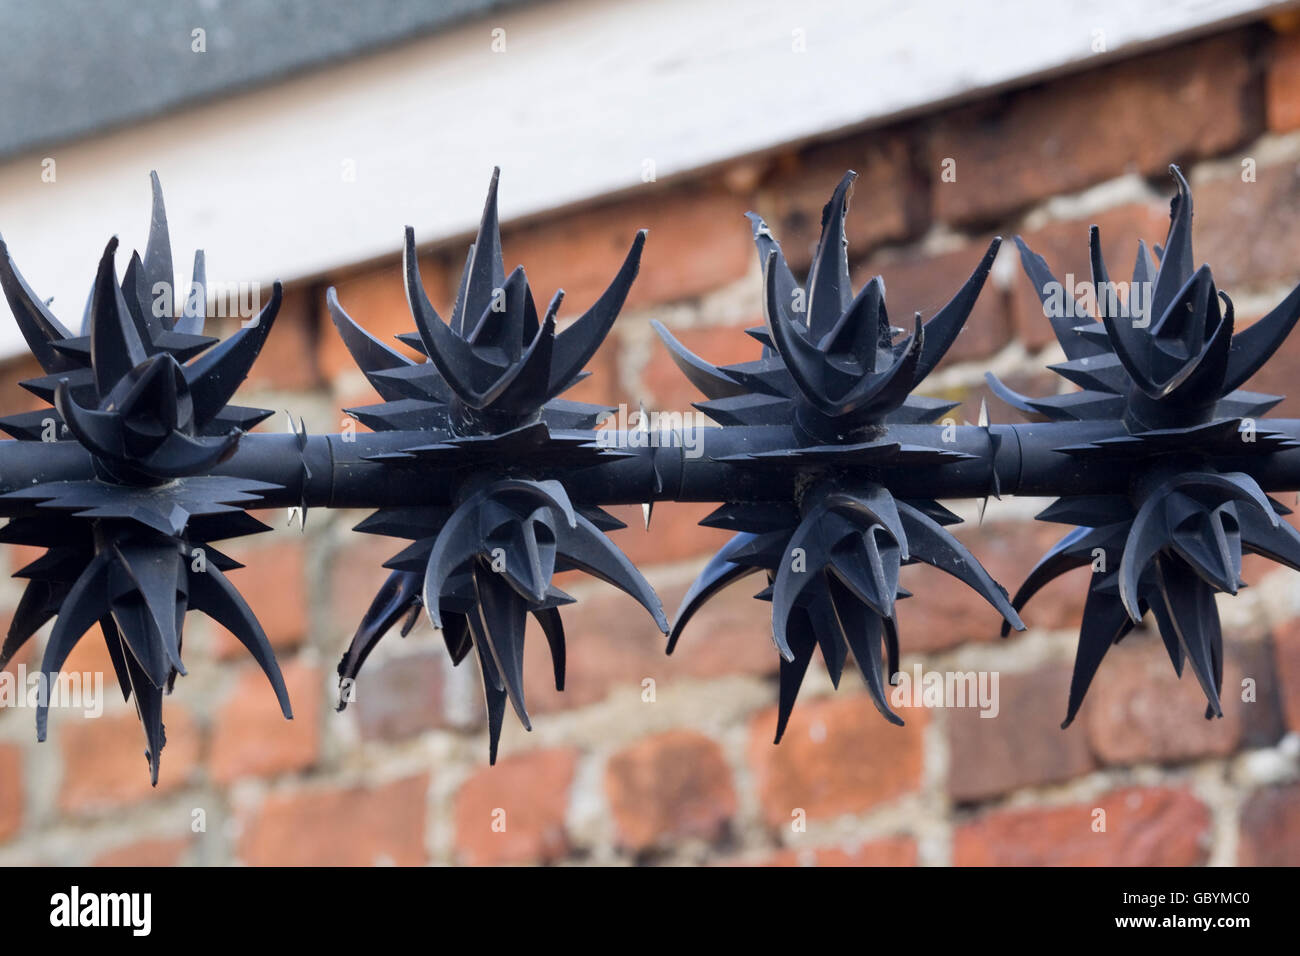 Security perimeter fence with sharp cast iron spikes - Stock Image